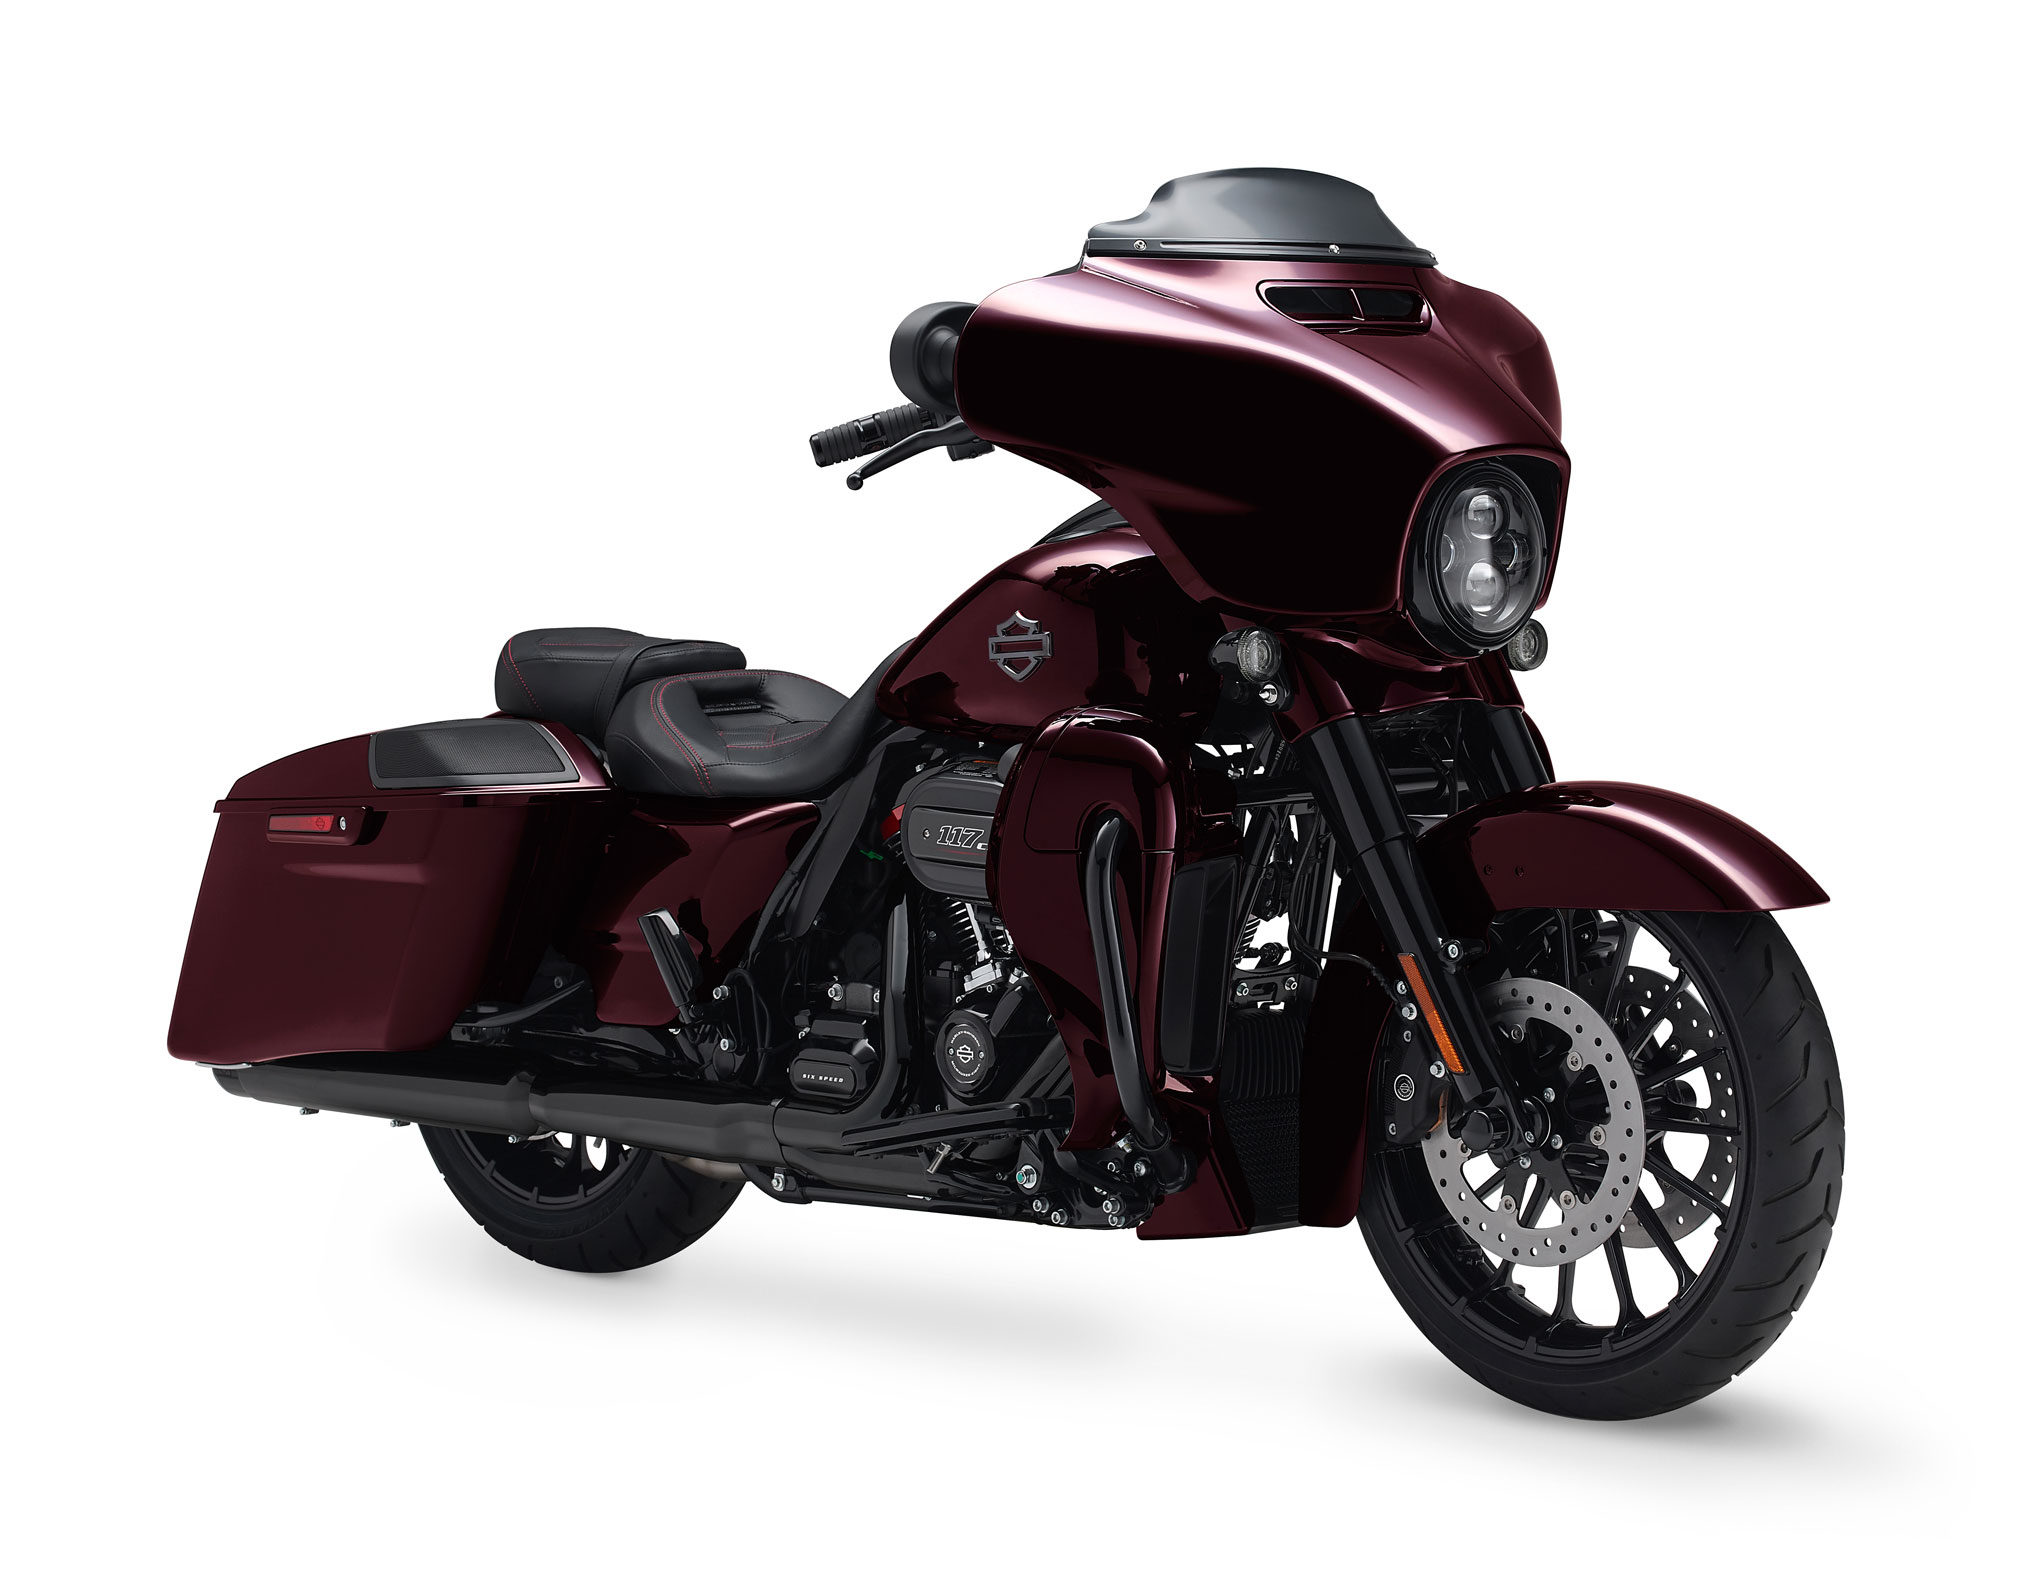 2019 harley davidson cvo street glide guide total motorcycle. Black Bedroom Furniture Sets. Home Design Ideas